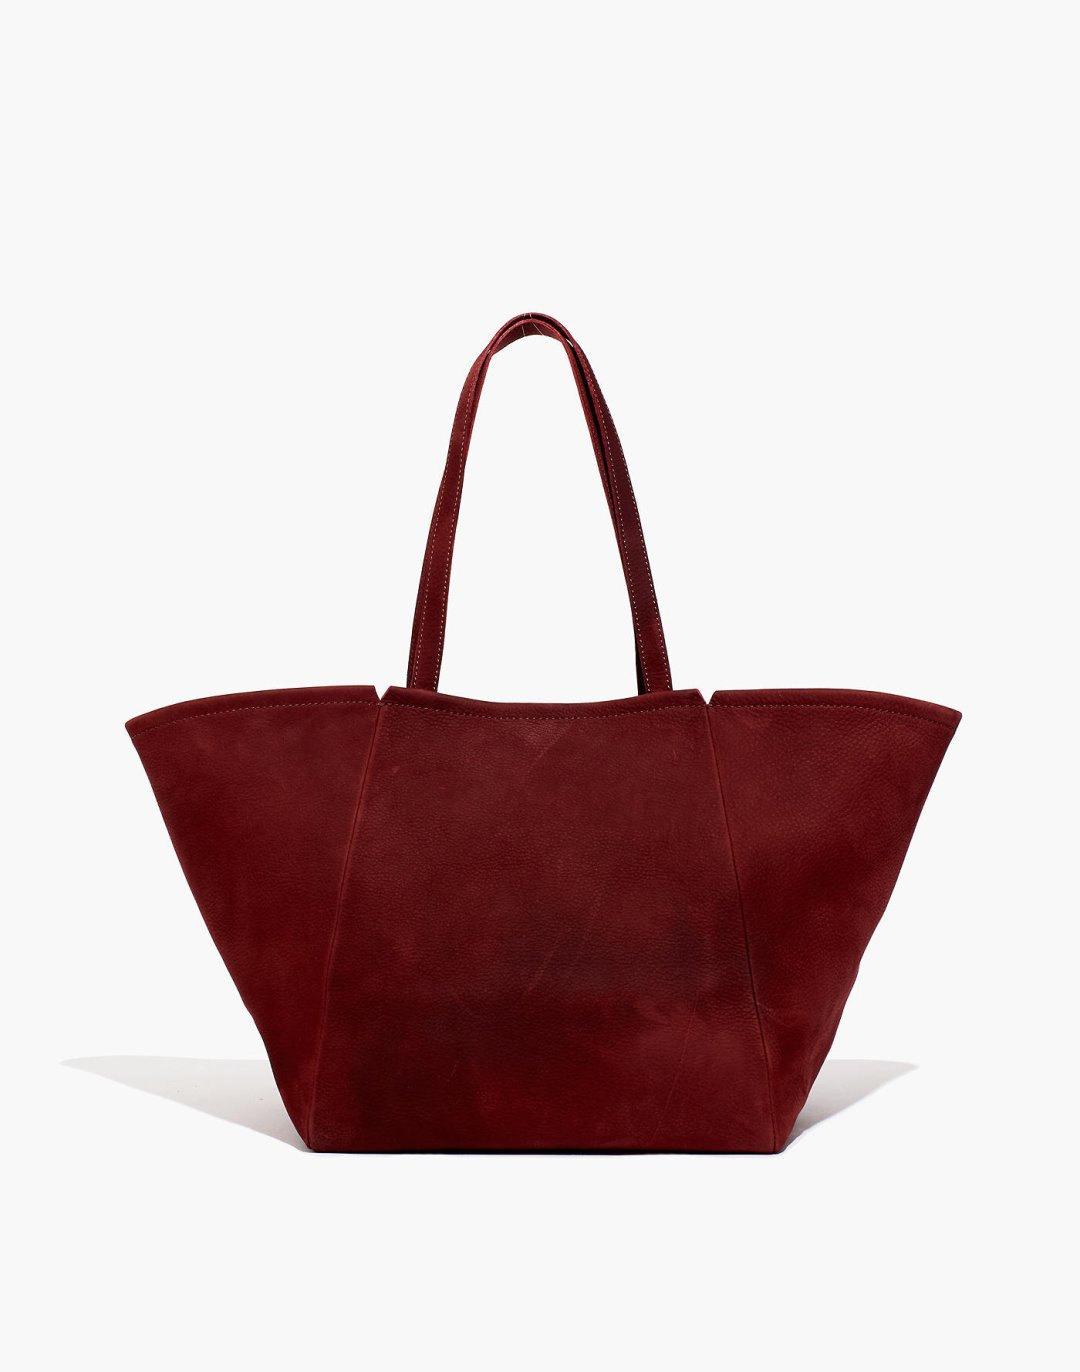 Madewell Carryall Tote